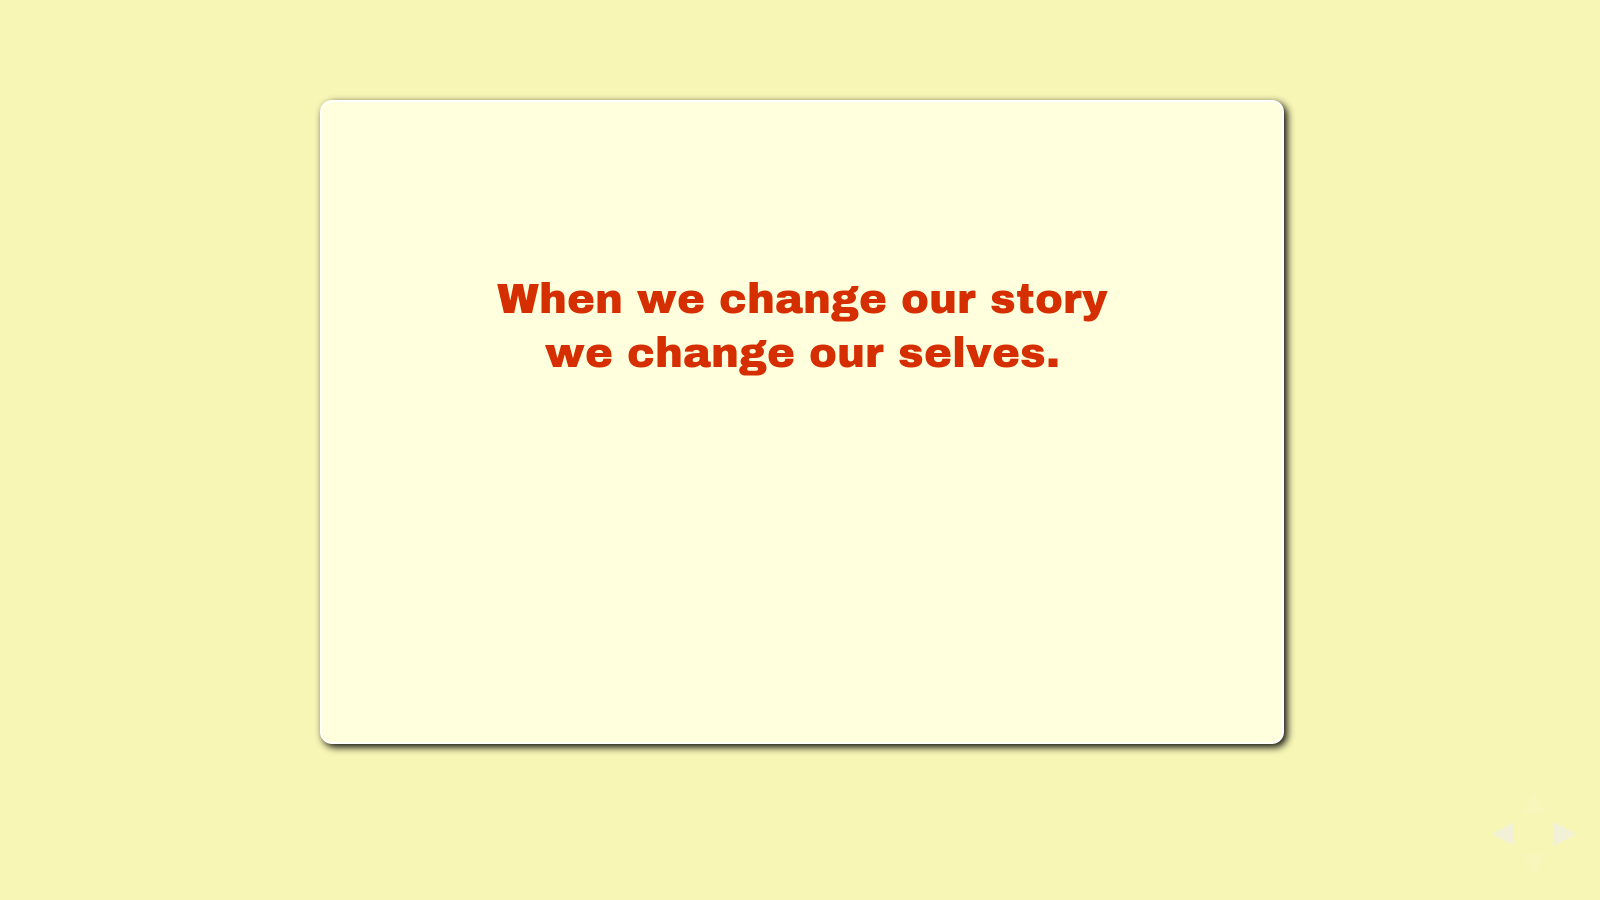 Slide: When we change our story, we change our selves